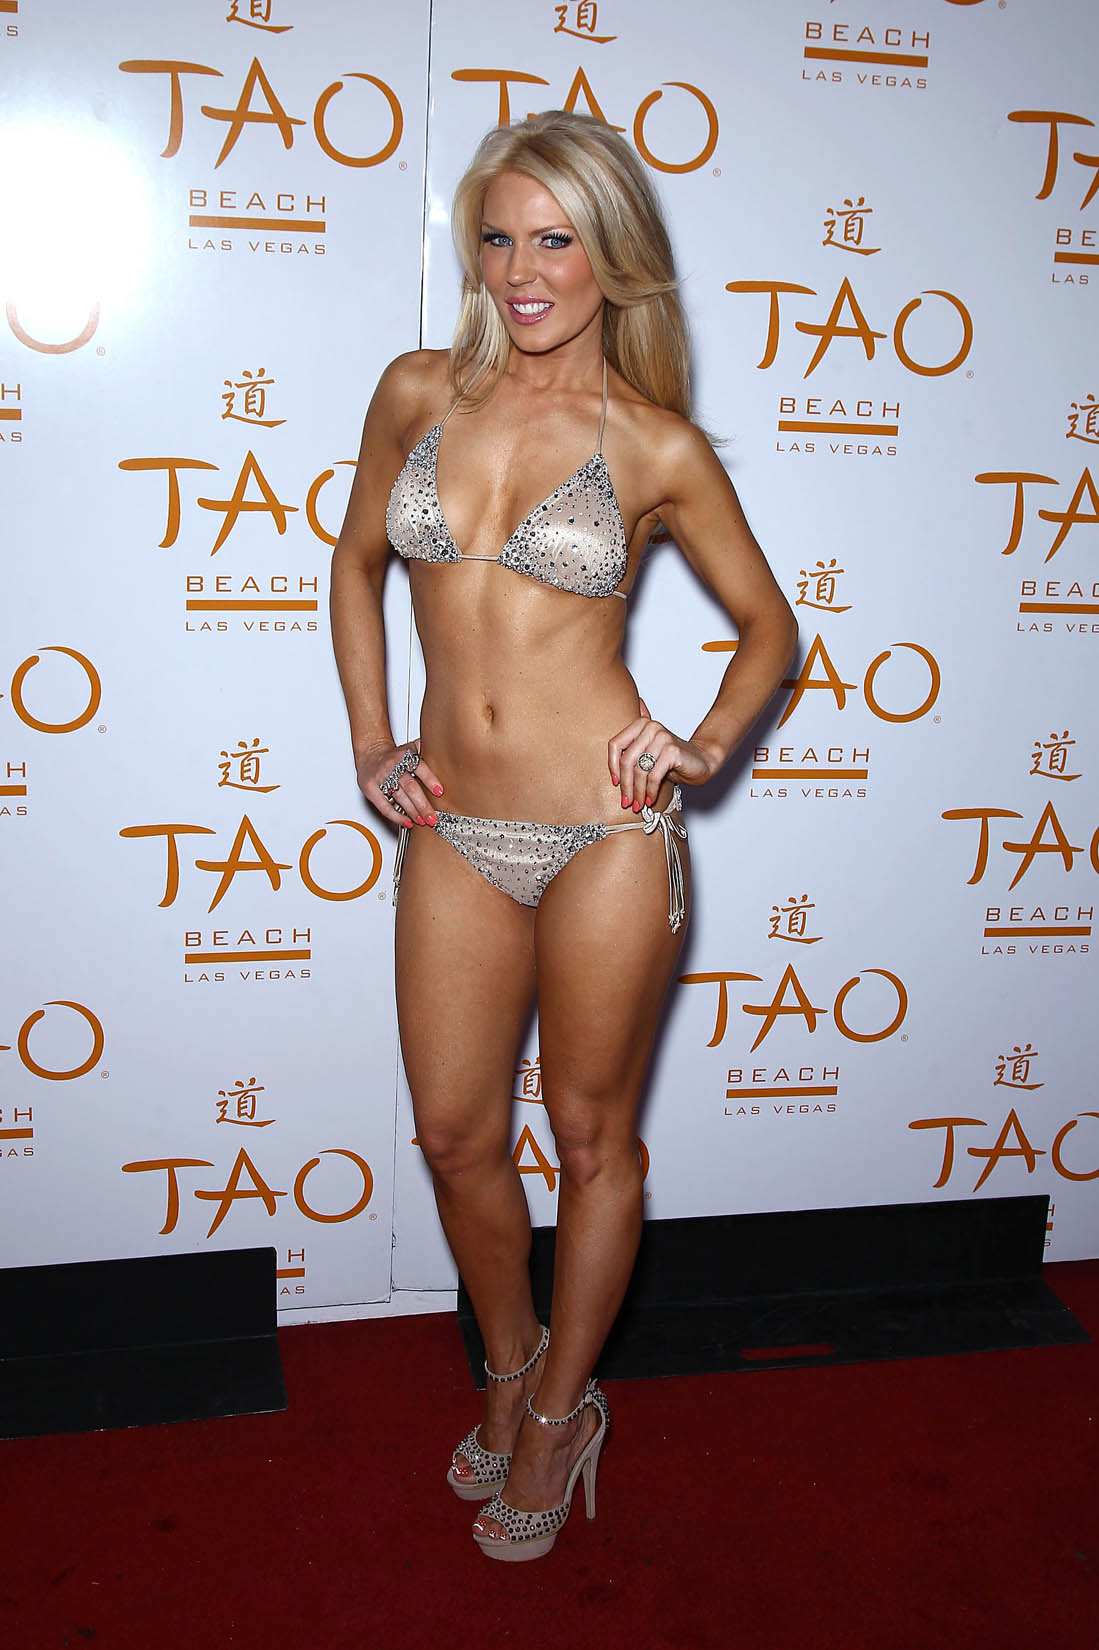 Gretchen Rossi In a bikini Hosts Bling Beach at Tao Hotel in Las Vegas